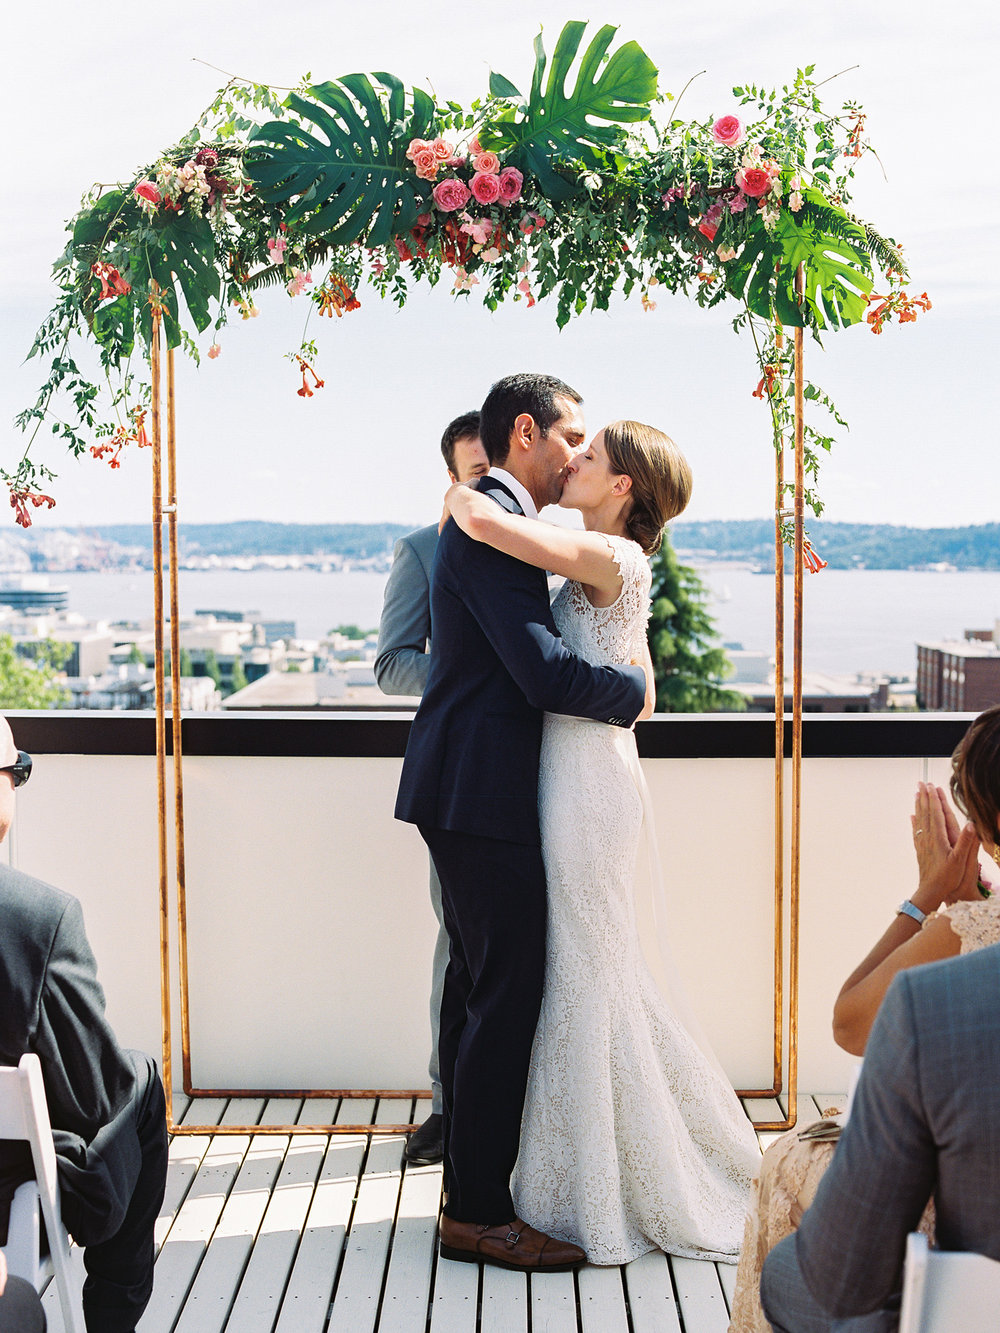 Seattle Queen Anne Intimate Rooftop Wedding Ceremony Photography.jpg